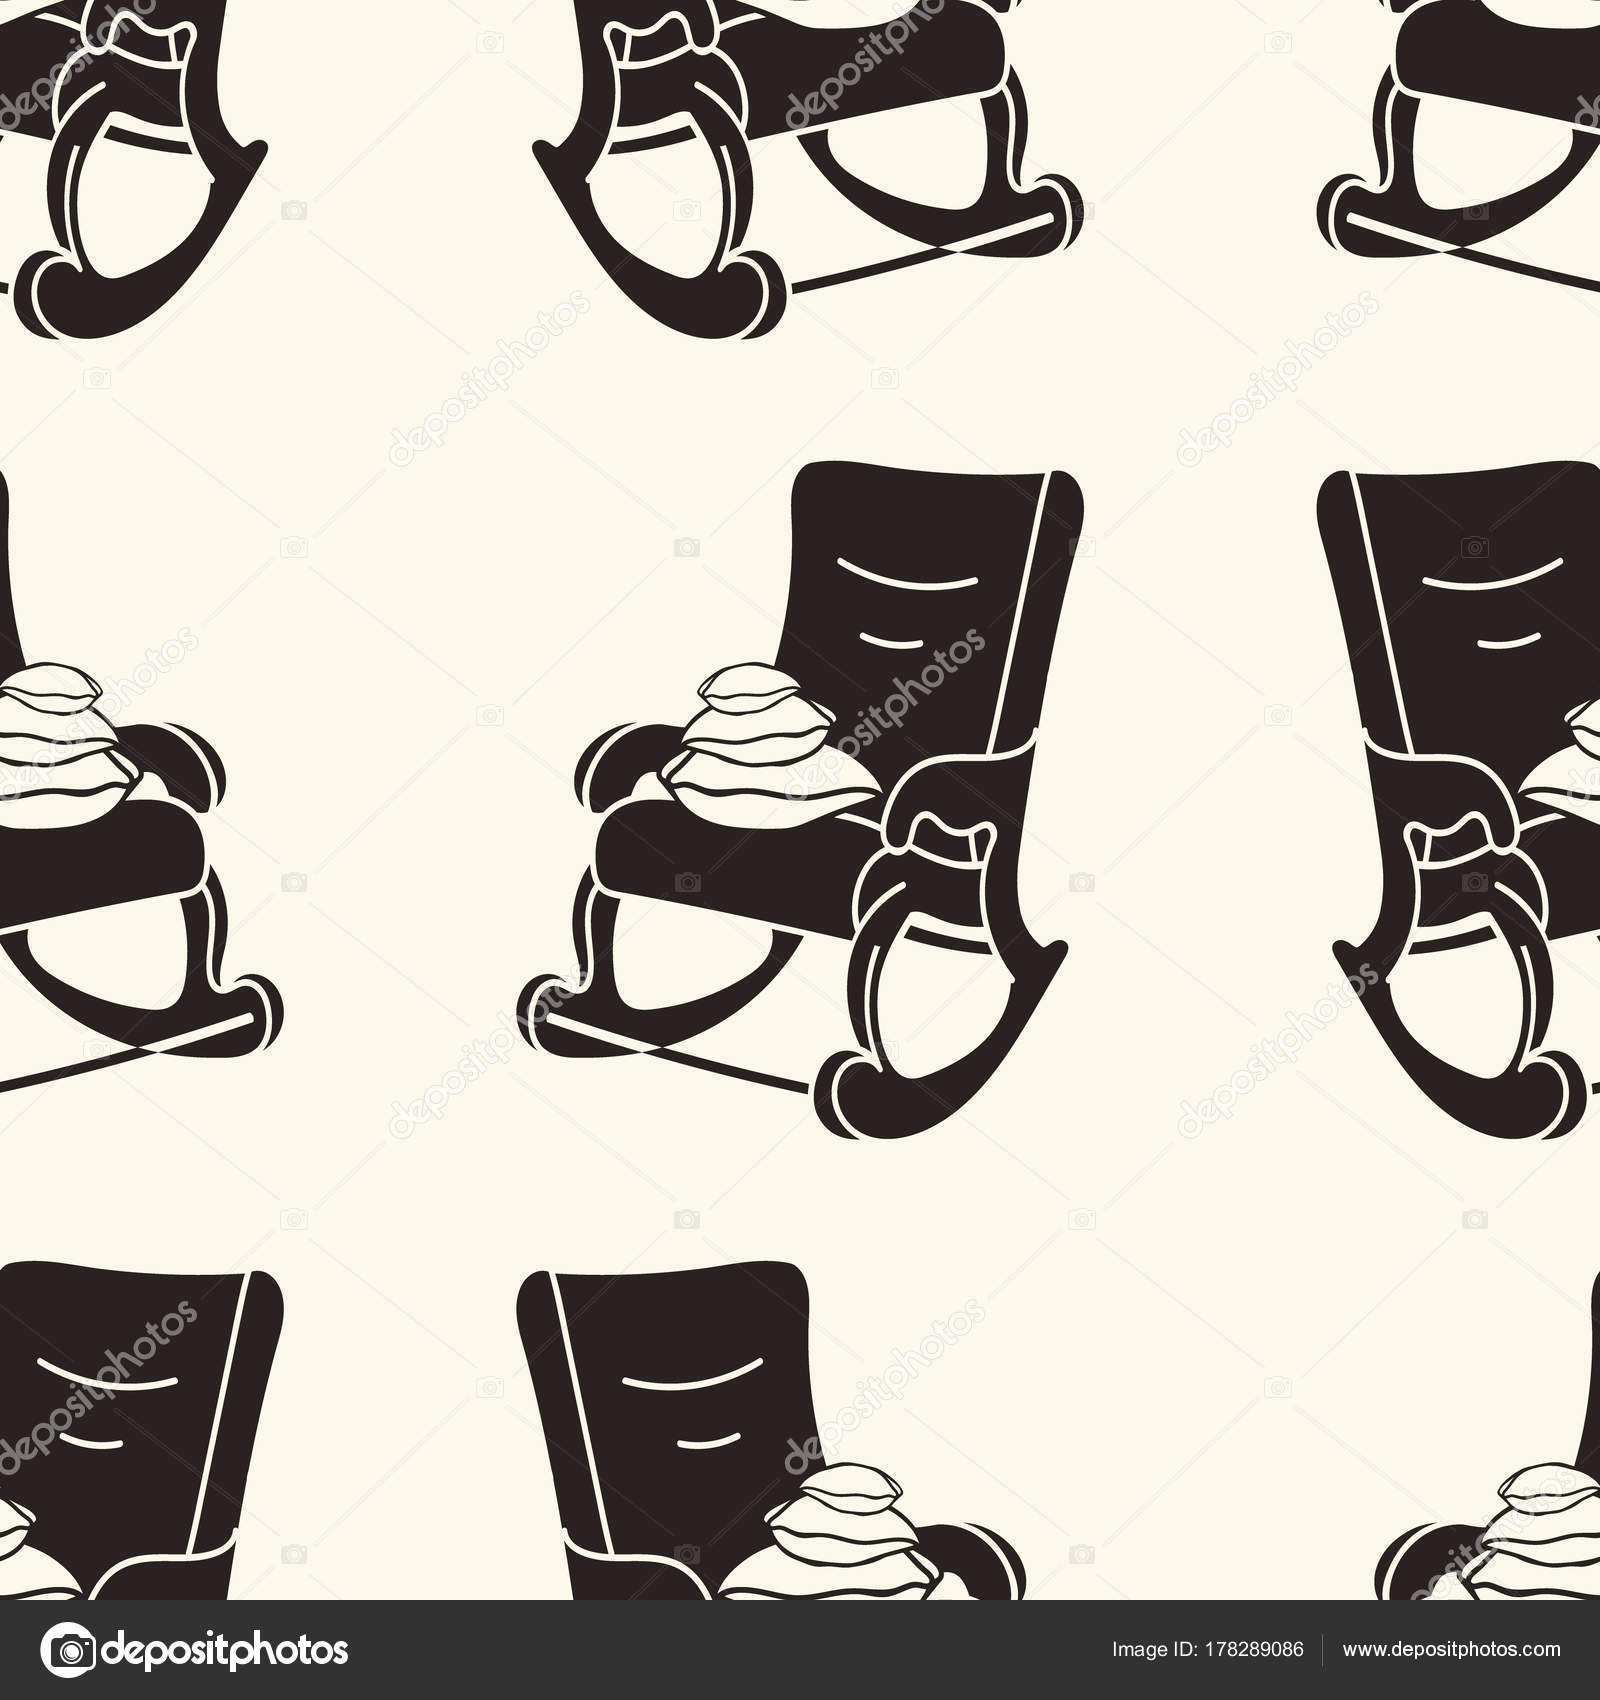 Rocking Chair With Pillows Vector Seamless Pattern. Rocking Chair Print In  Minimal Flat Style, Simple Pattern With Black Silhouette Of Rocker.